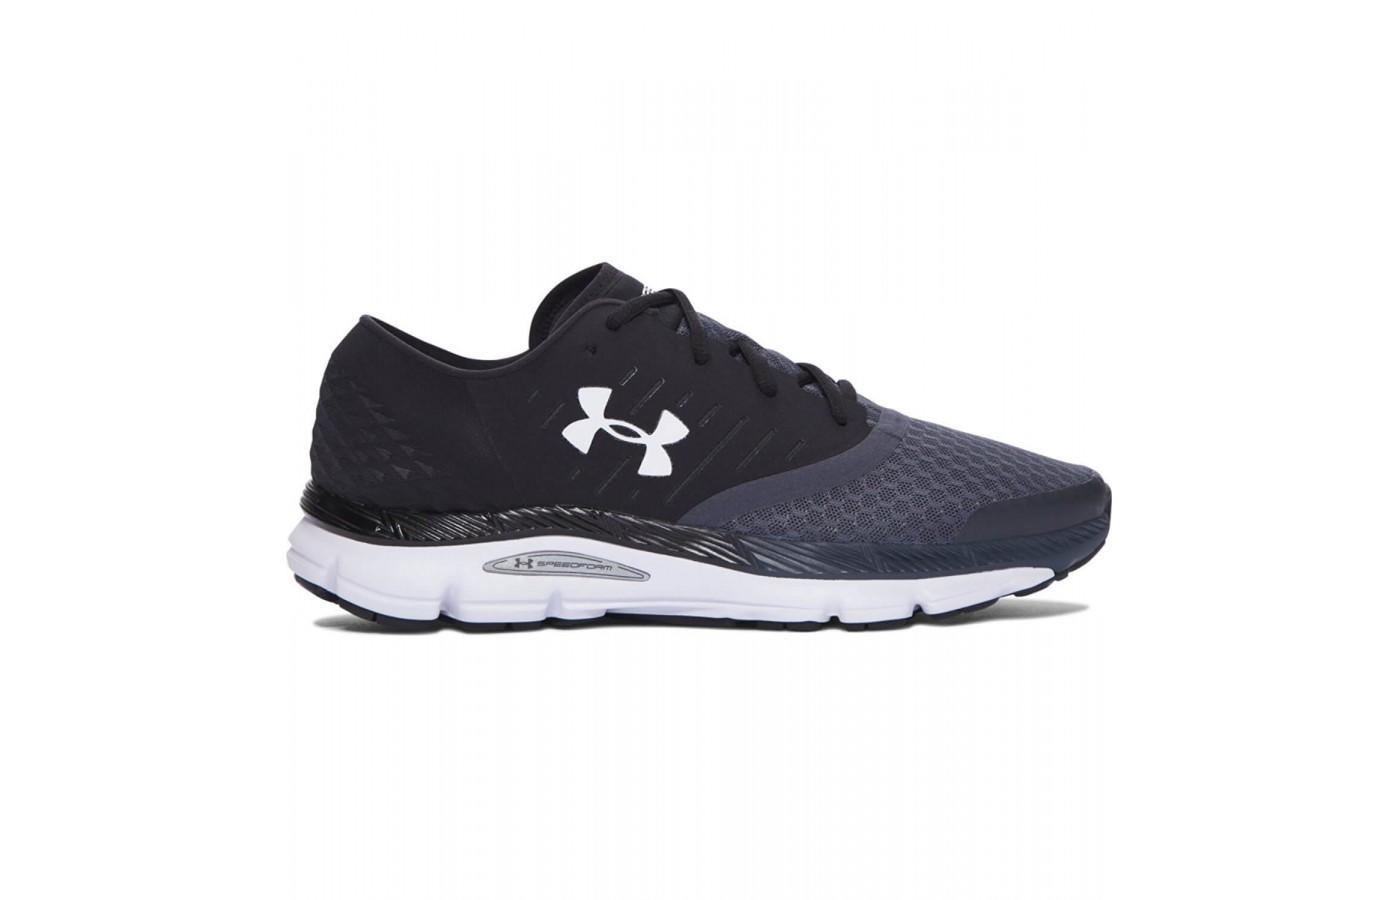 The Under Armour Speedform Intake is a minimalist shoe designed for speed